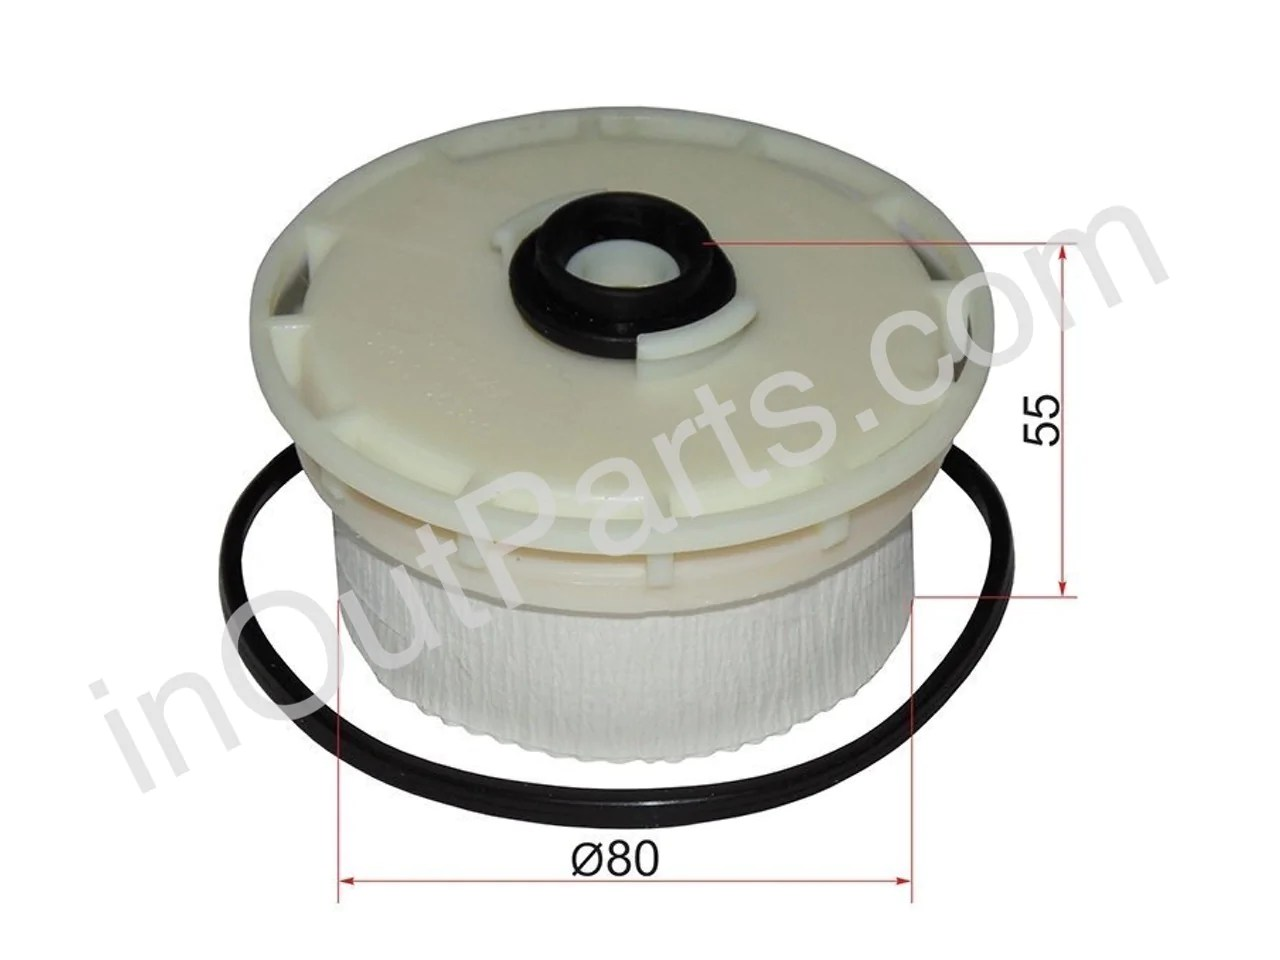 hight resolution of fuel filter diesel fits toyota land cruiser 200 2007 2008 2009 2010 2011 2012 2013 2014 2015 2016